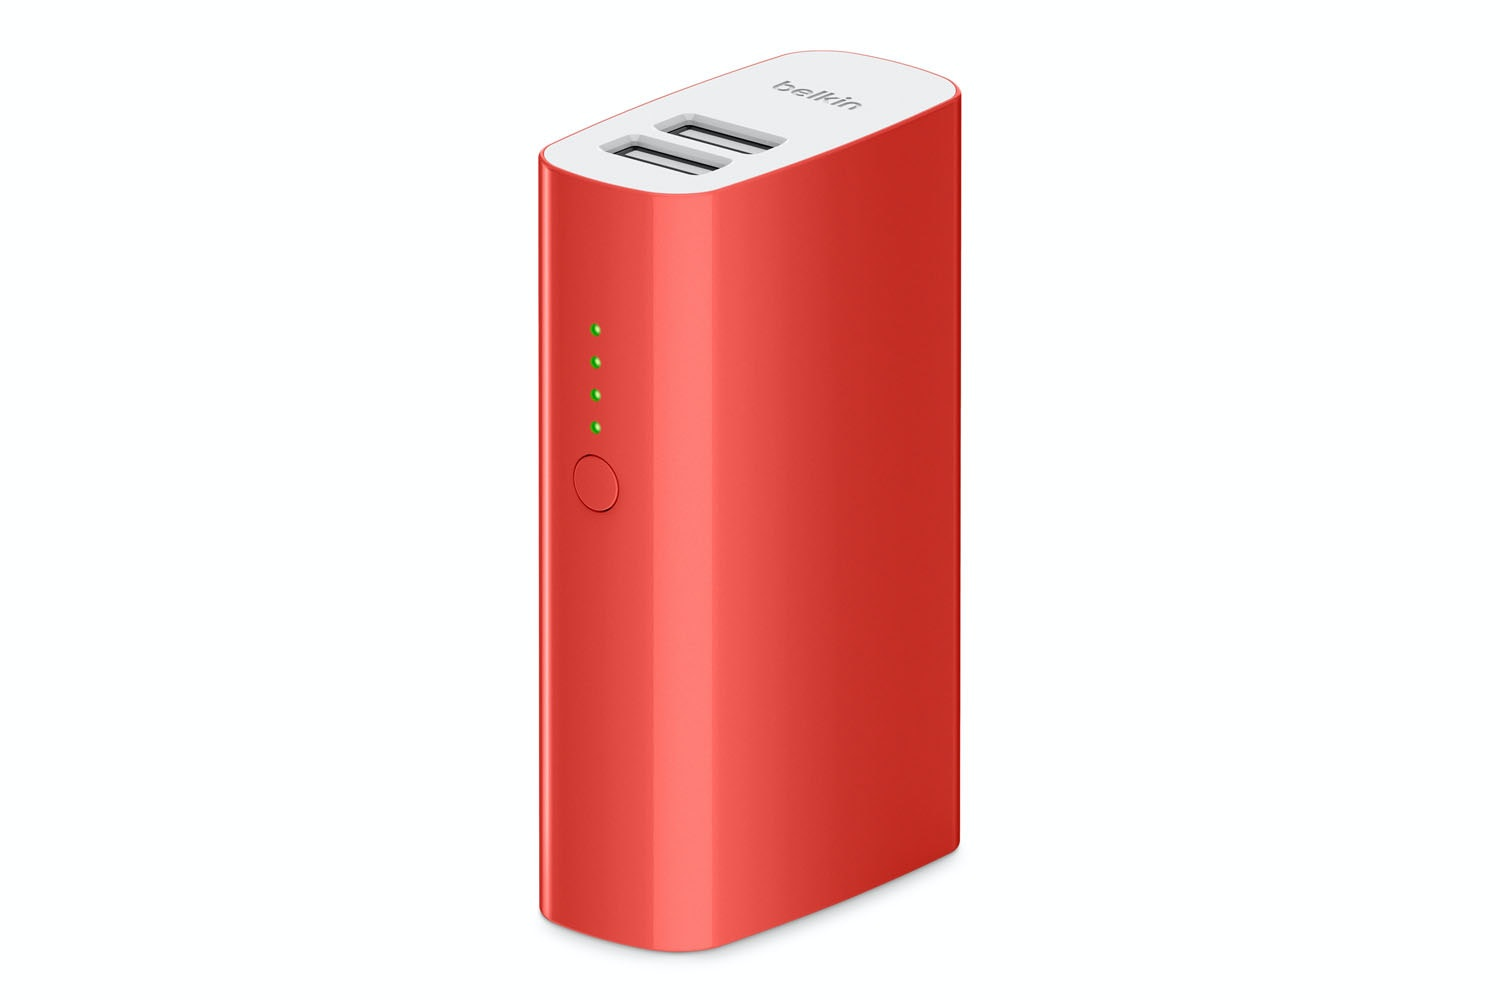 Belkin Battery Pack 4000mAh | Red